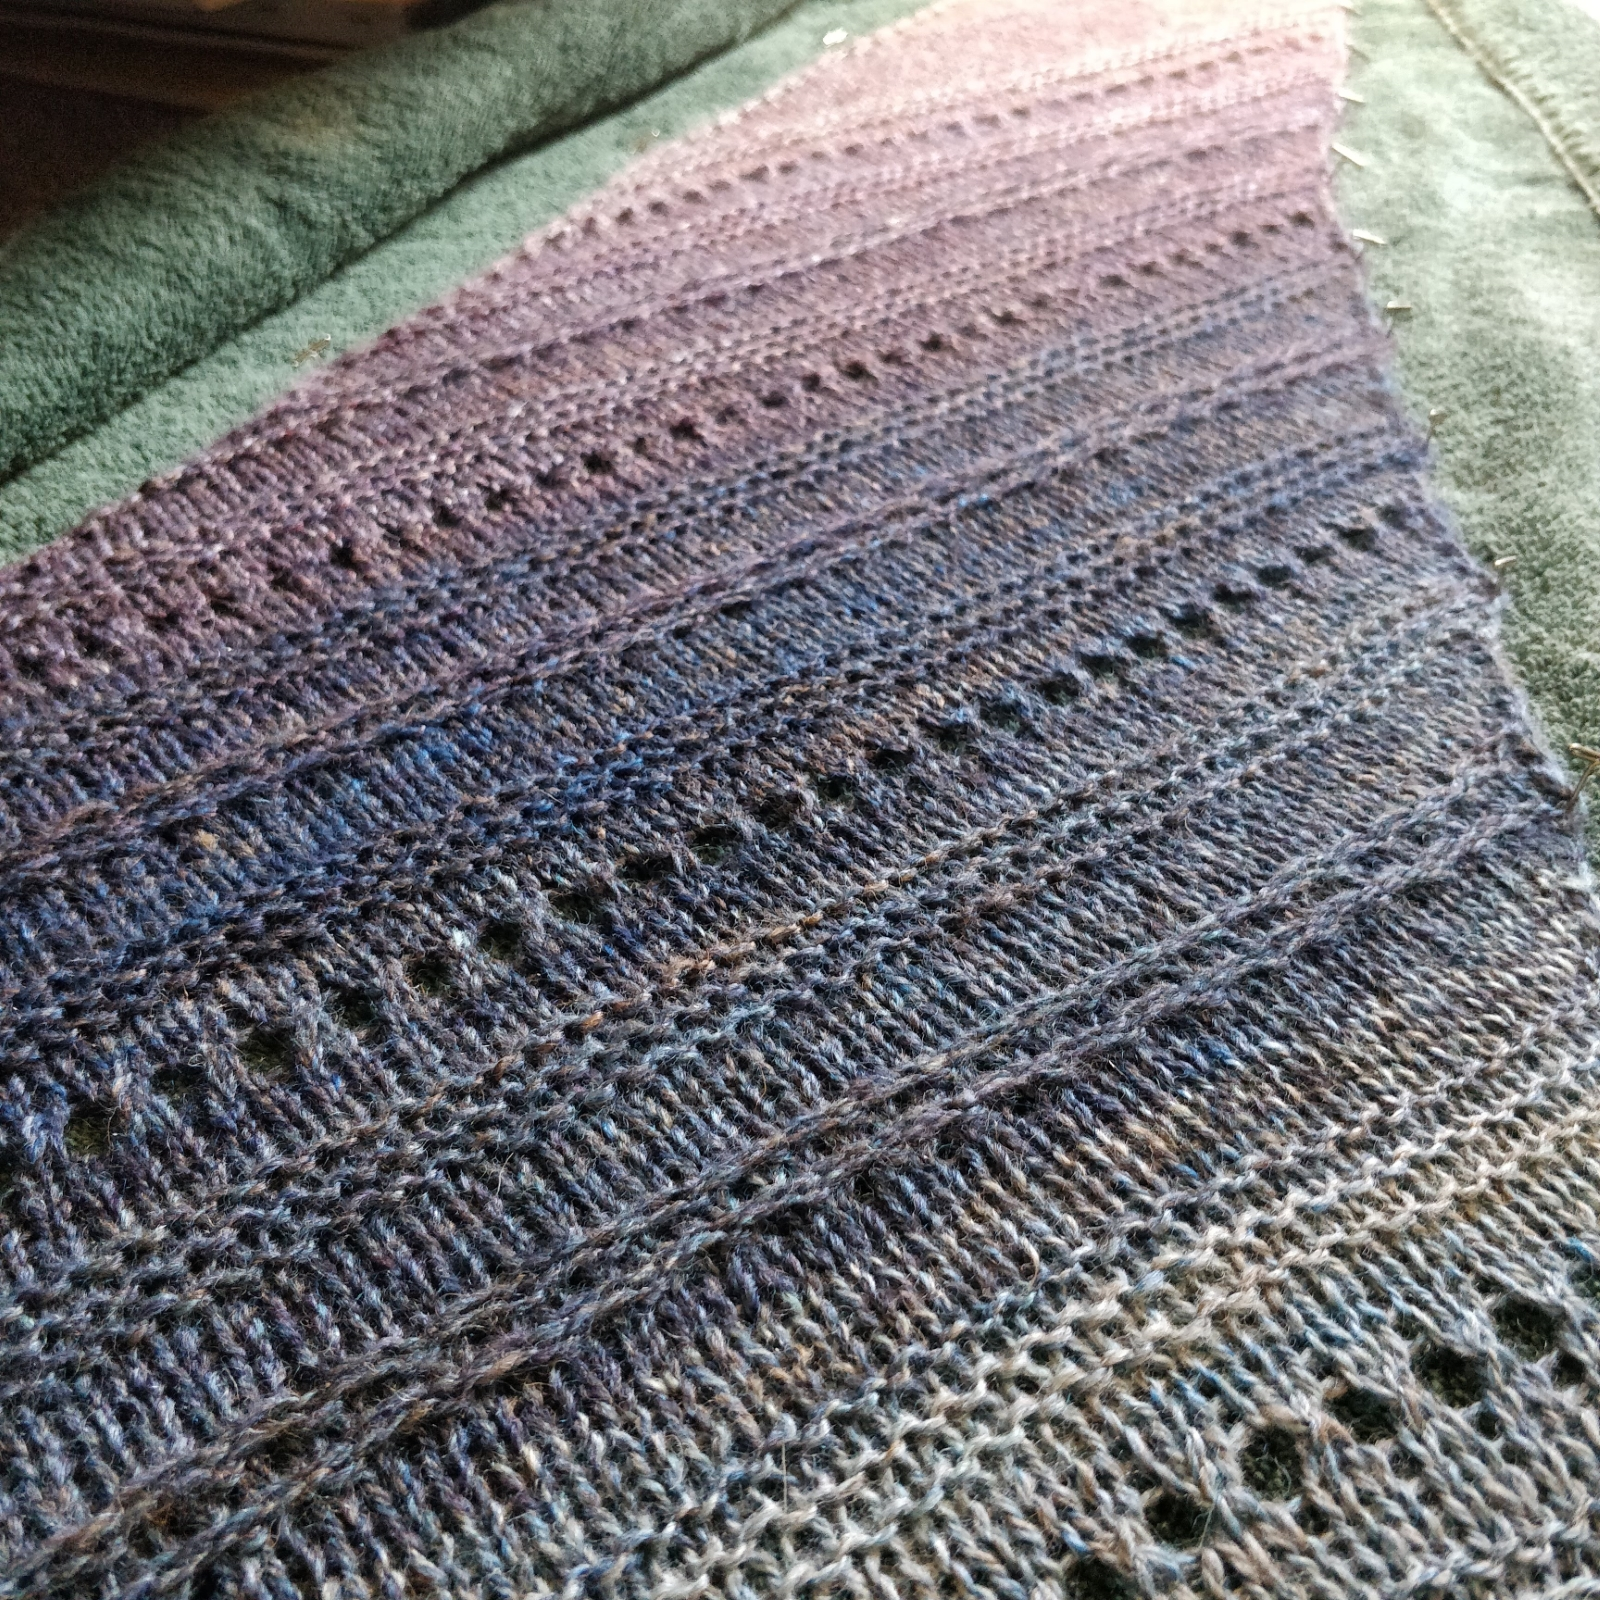 """A closeup view of the """"May I Borrow This, Please"""" shawl, knit in handspun yarn. The gradient of blue through purple to pink fades off into the background of the picture. Bands of different textures stripe across the shawl."""